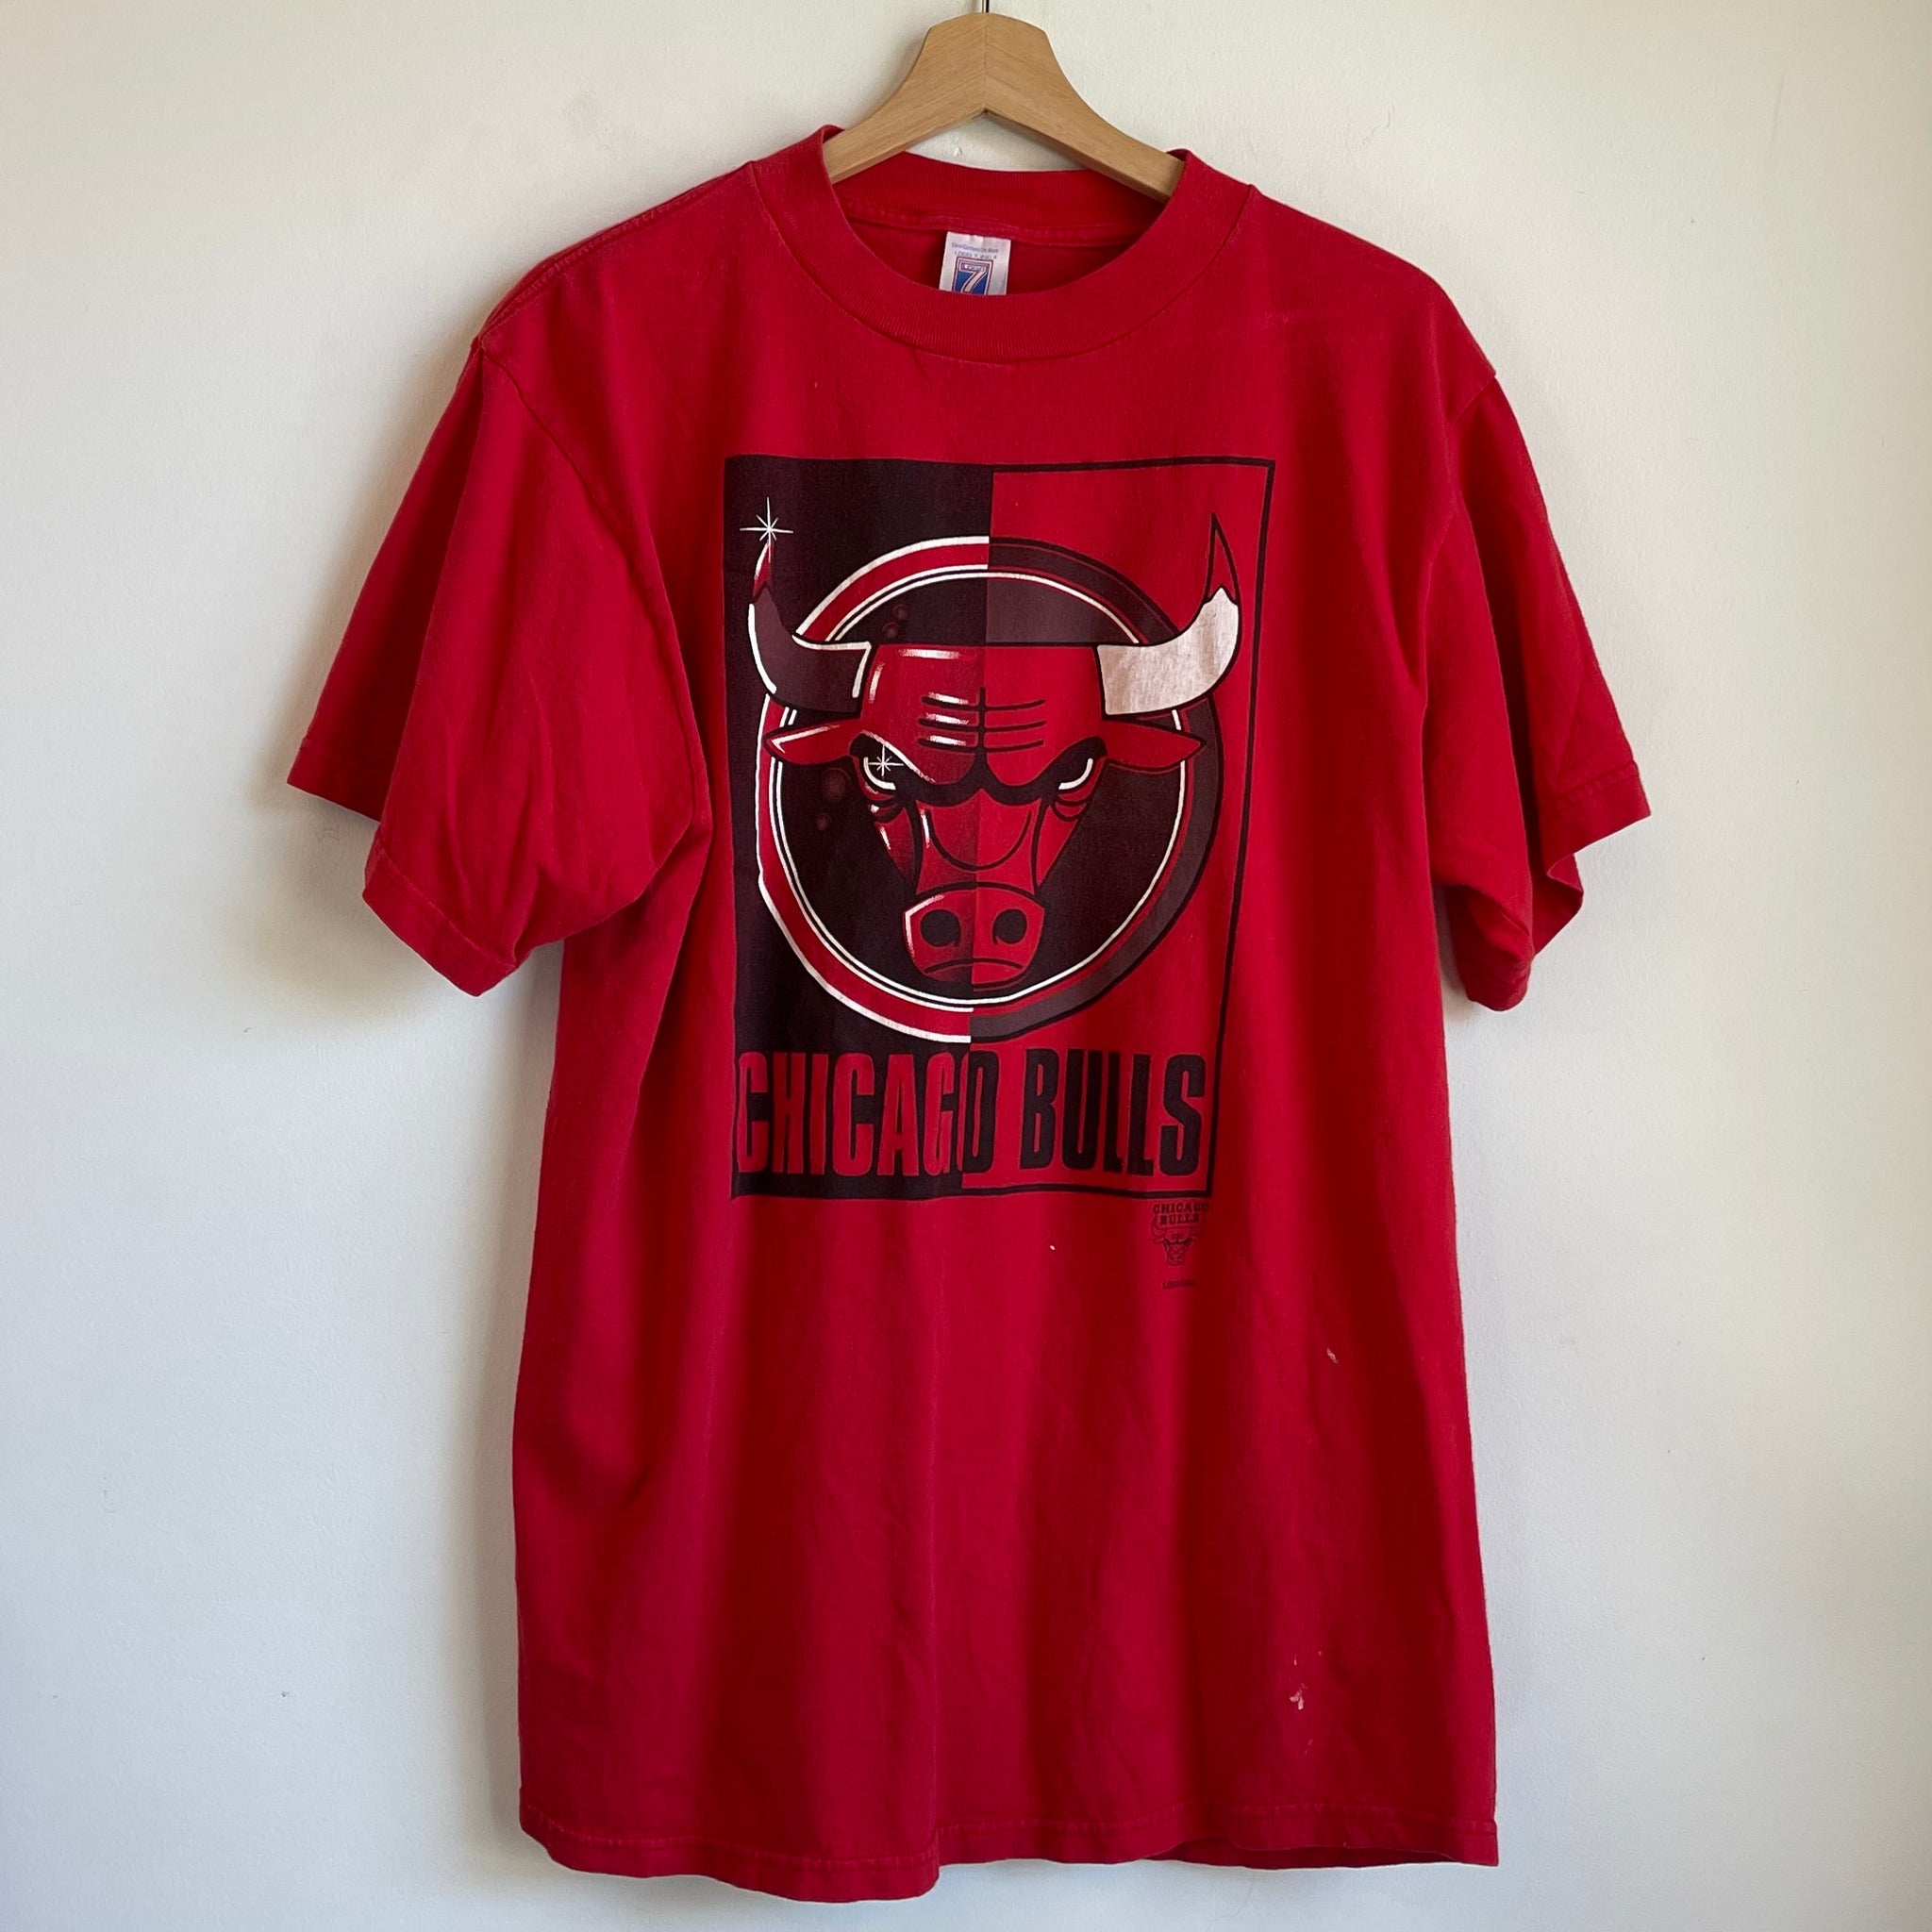 Logo 7 Chicago Bulls Red Tee Shirt